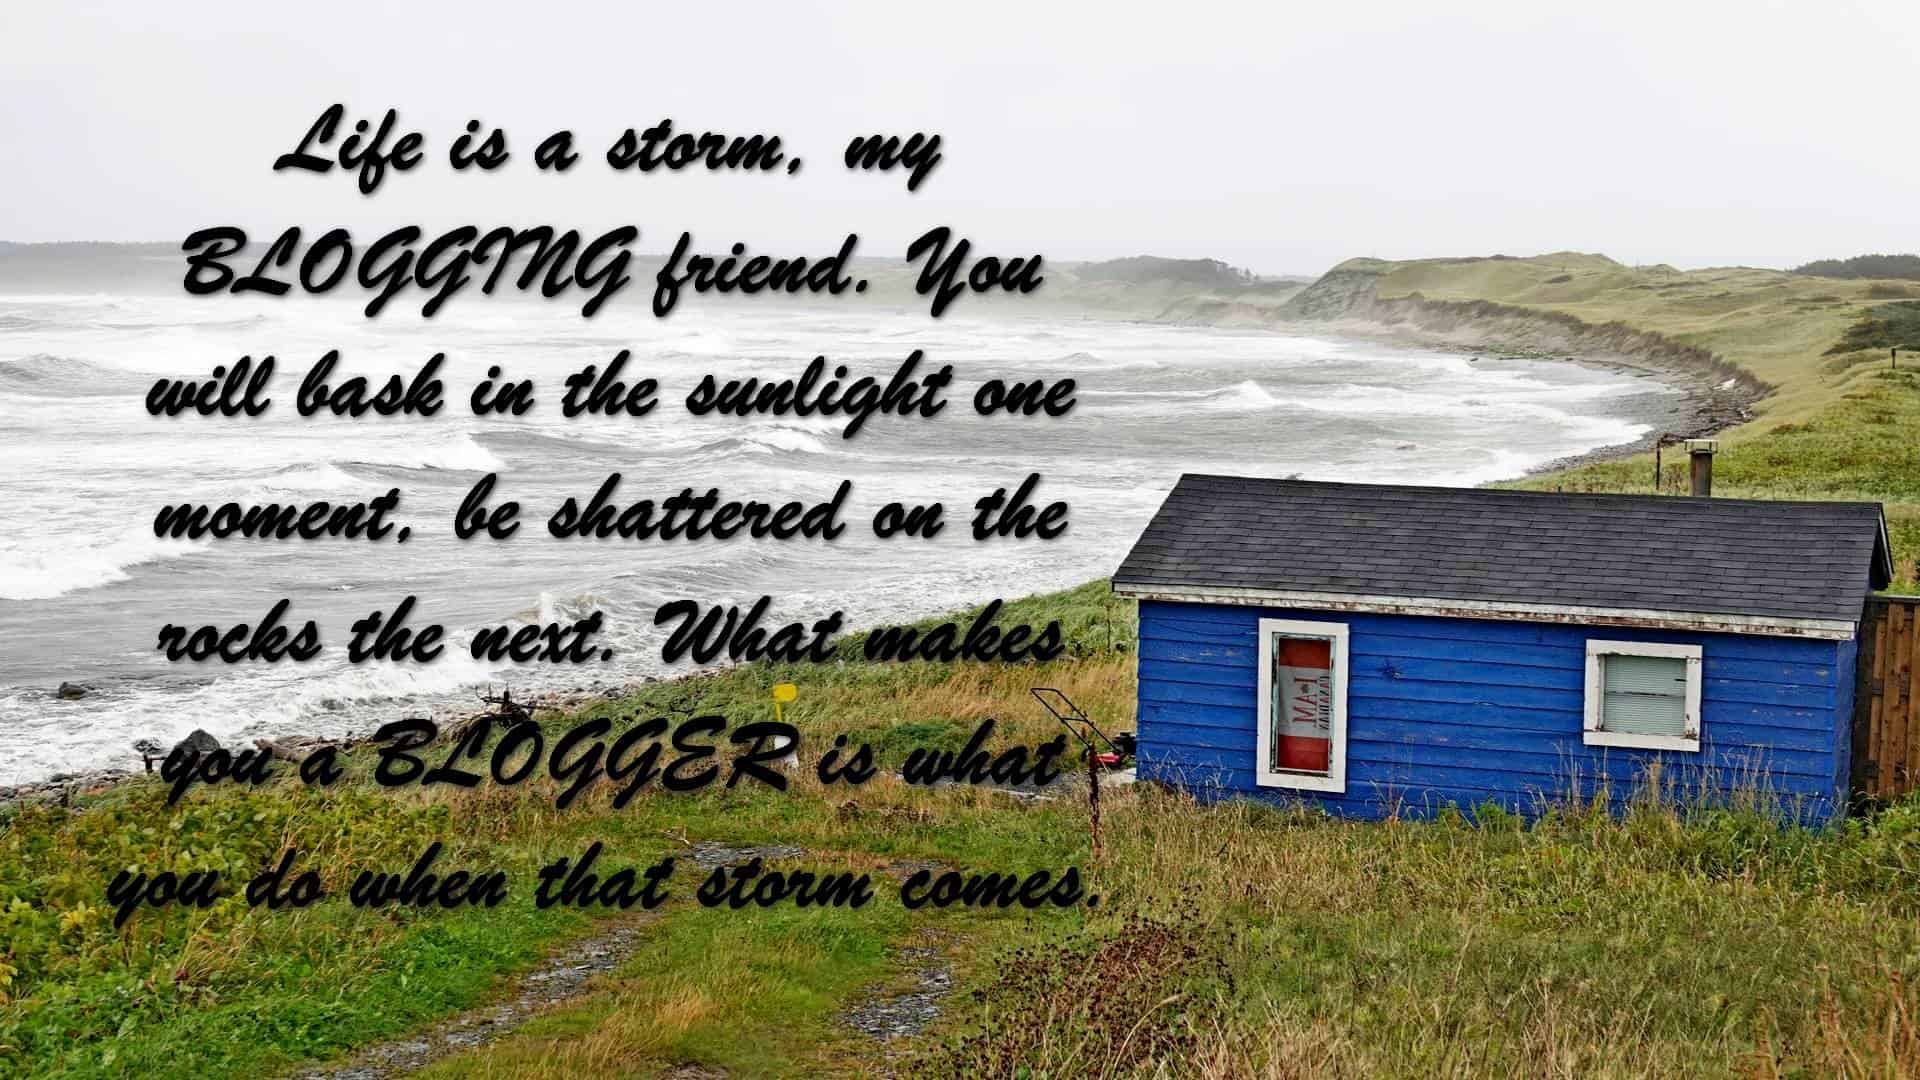 Life is a storm, my BLOGGING friend. You will bask in the sunlight one moment, be shattered on the rocks the next. What makes you a BLOGGER is what you do when that storm comes.